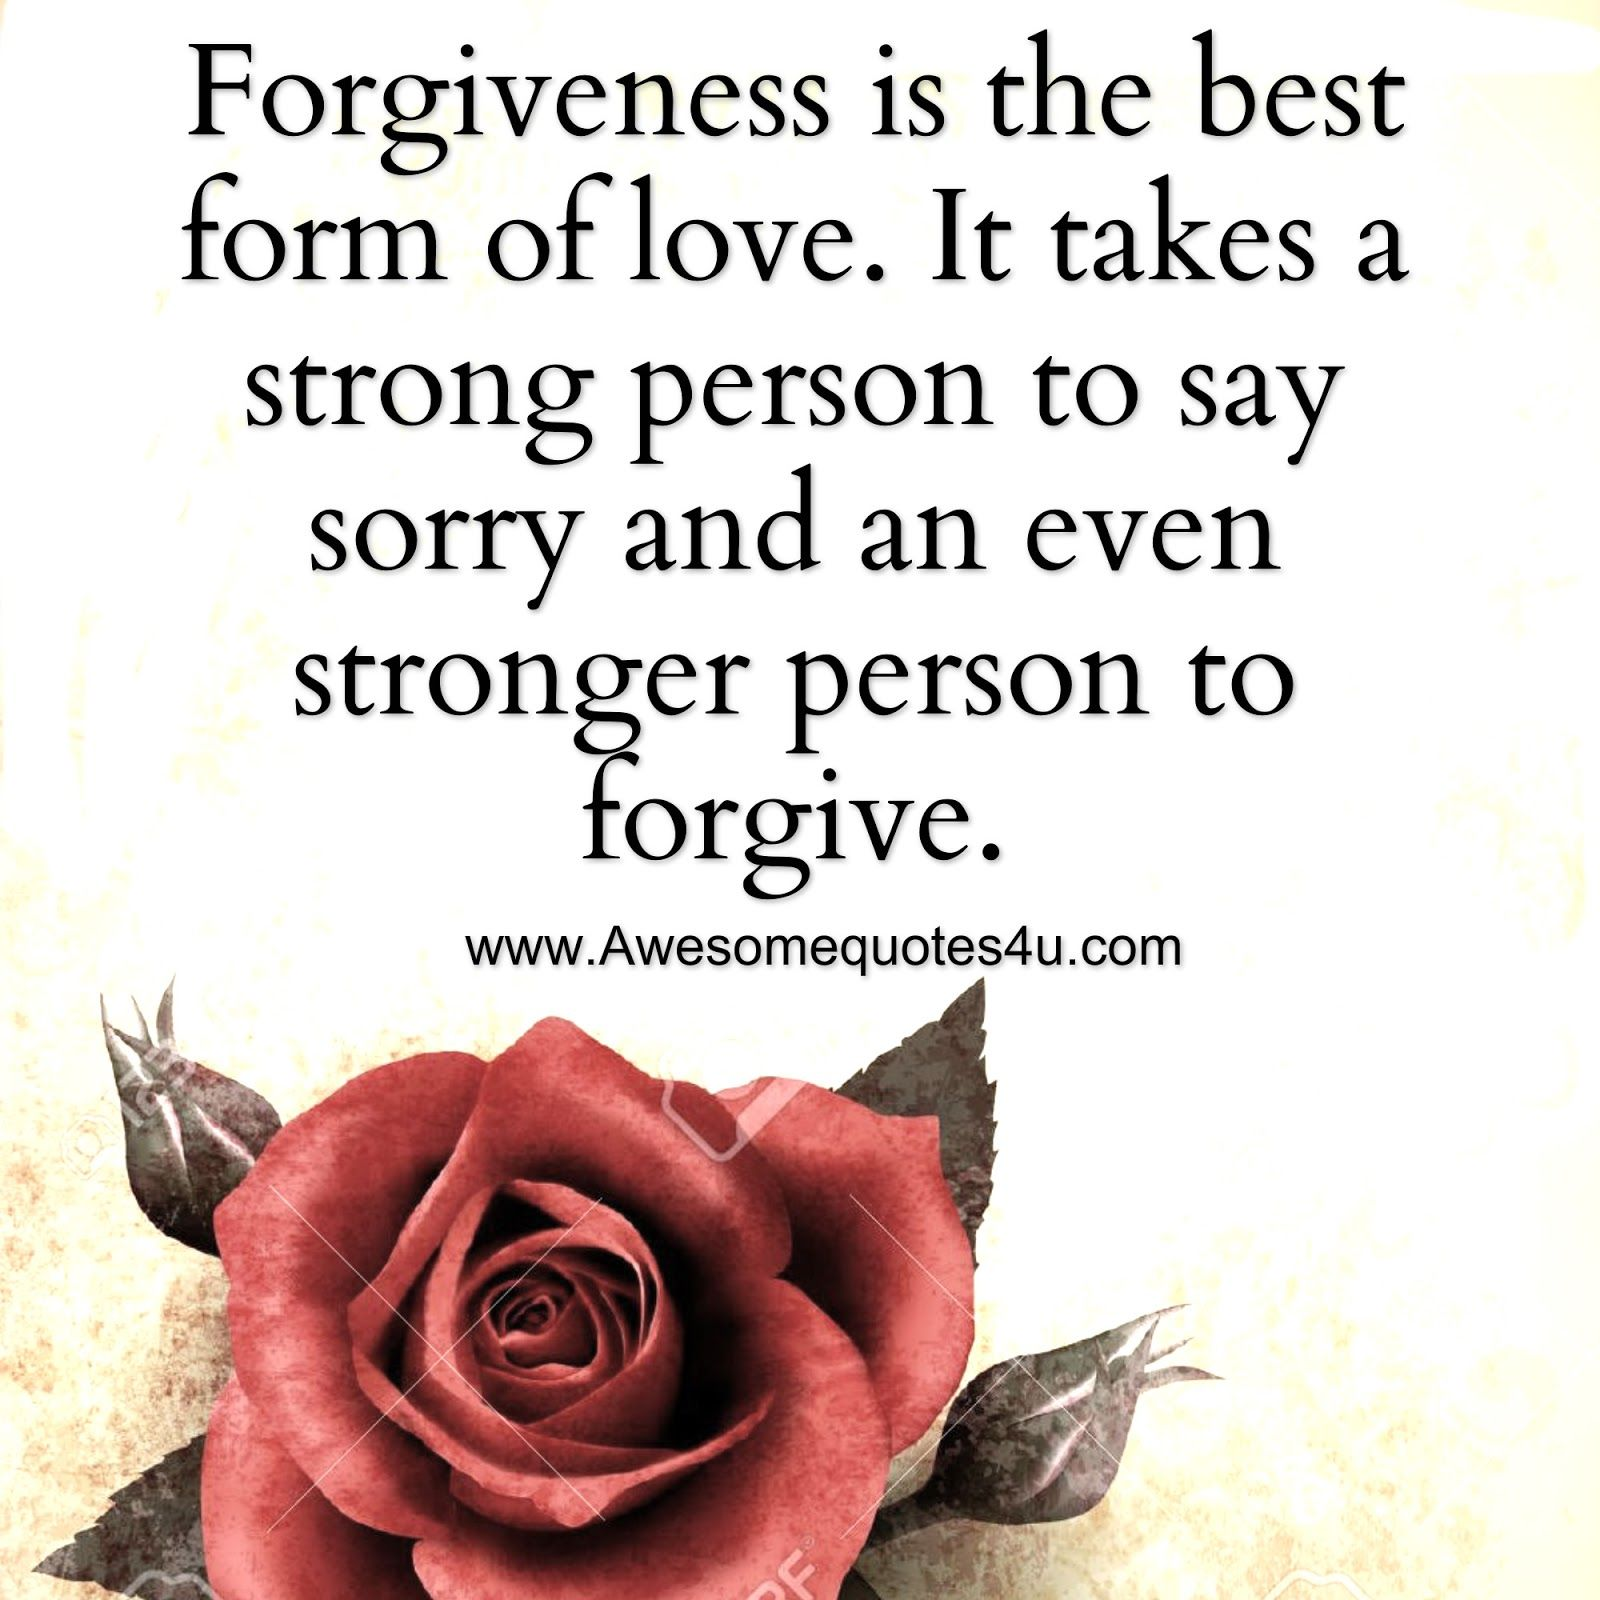 Awesome Quotes The Best Form of Love